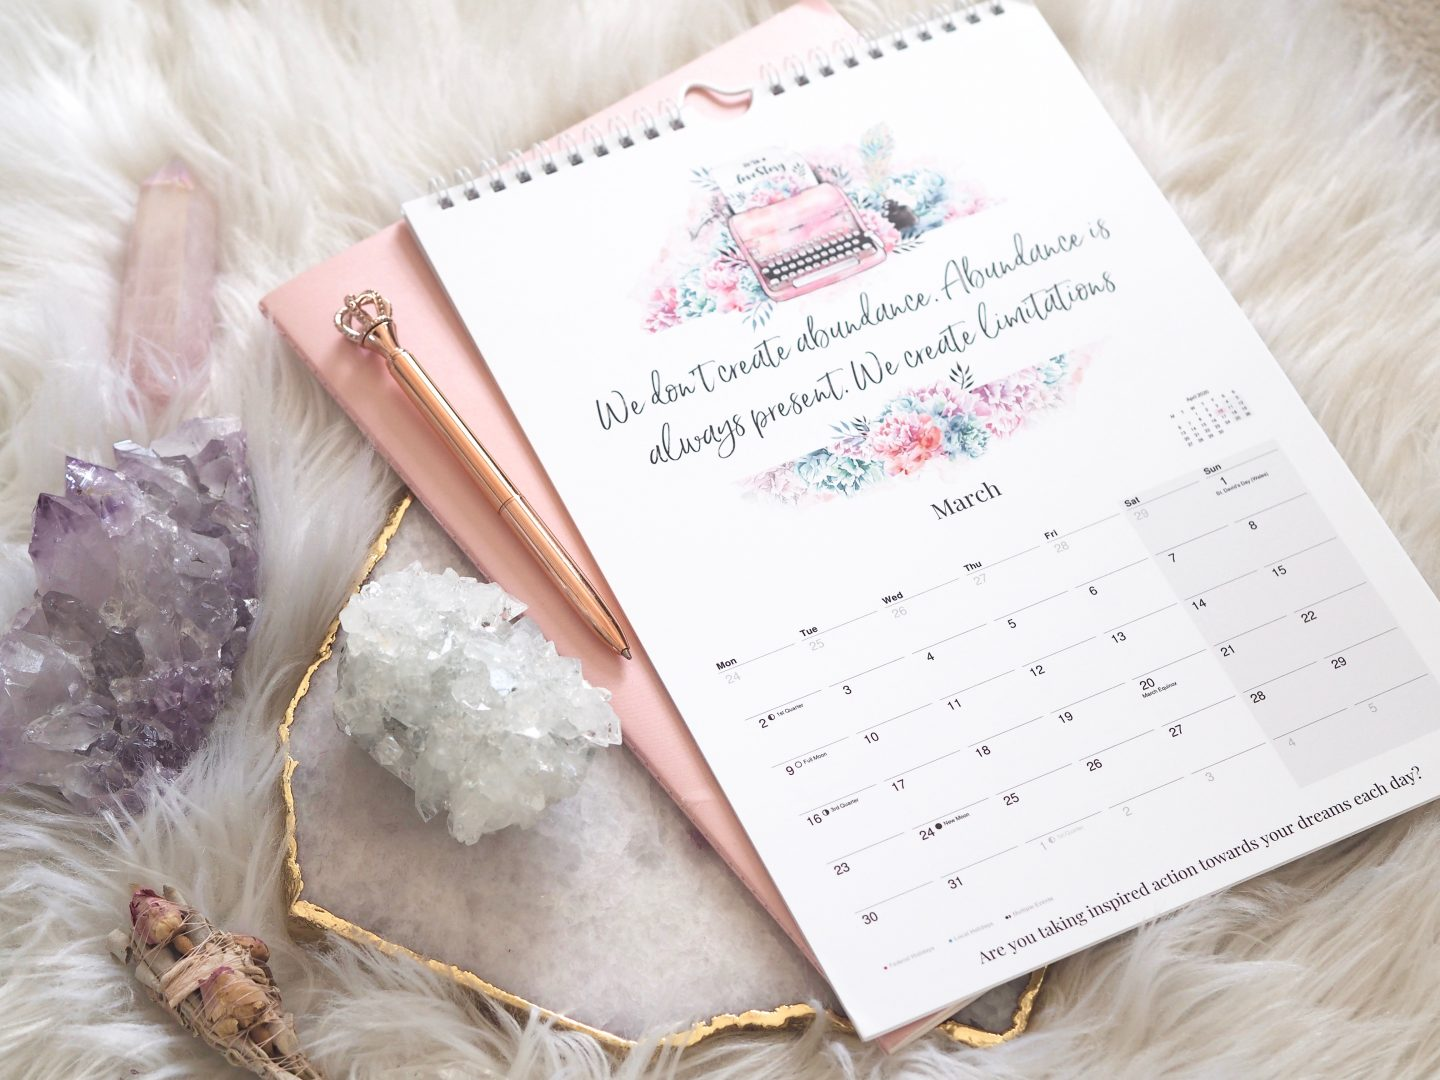 2020 LAW OF ATTRACTION CALENDAR - Emma Mumford